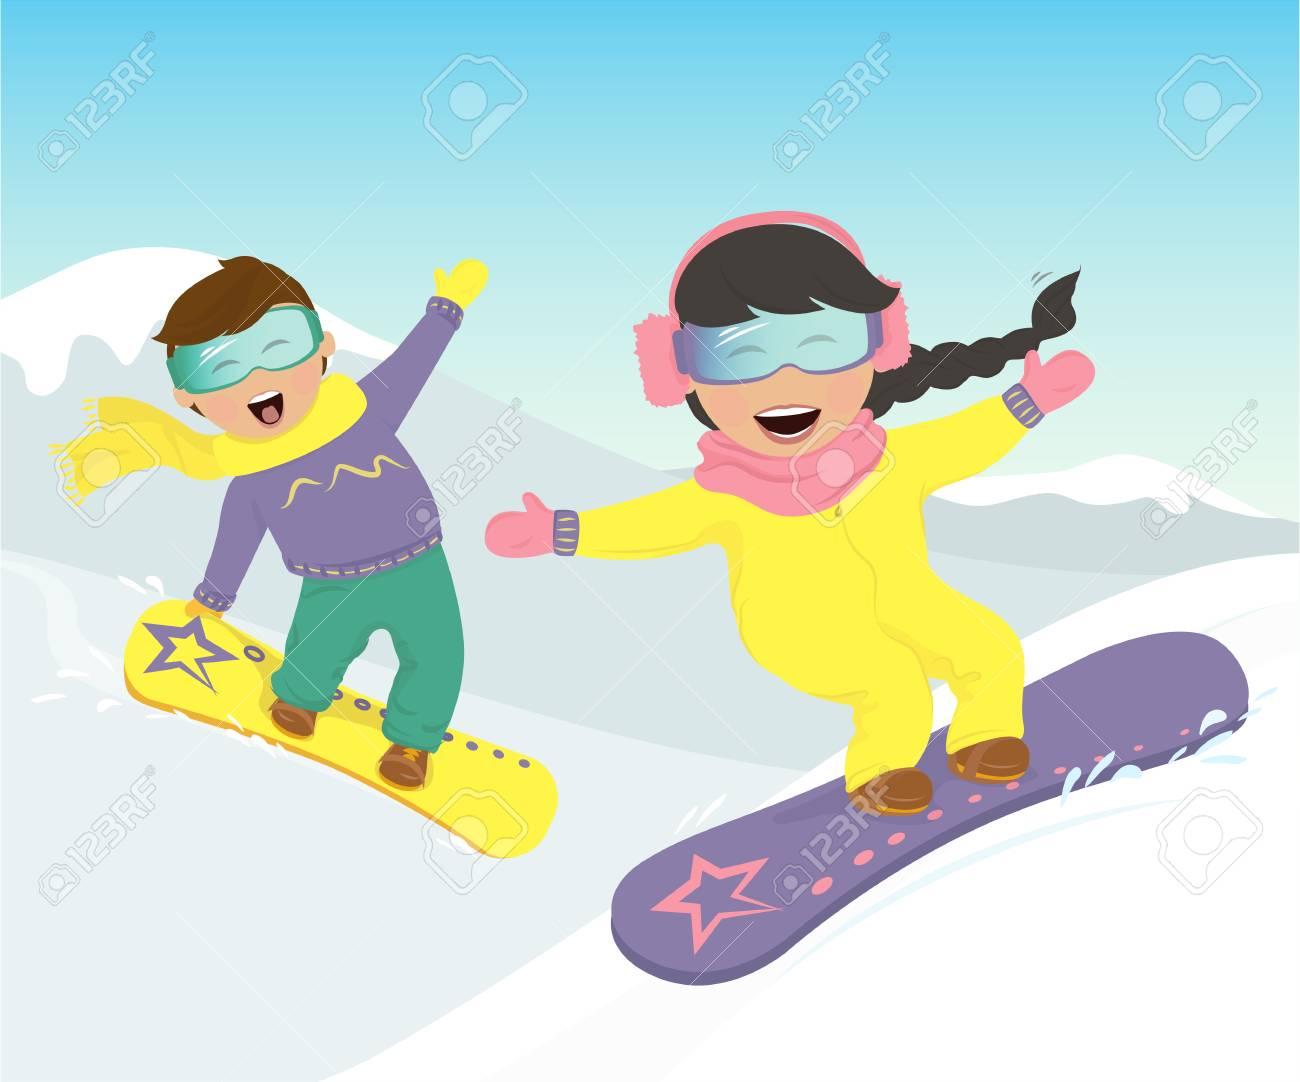 Merry Girl And Boy Snowboarding In The Mountains Vector Illustration Royalty Free Cliparts Vectors And Stock Illustration Image 84928447